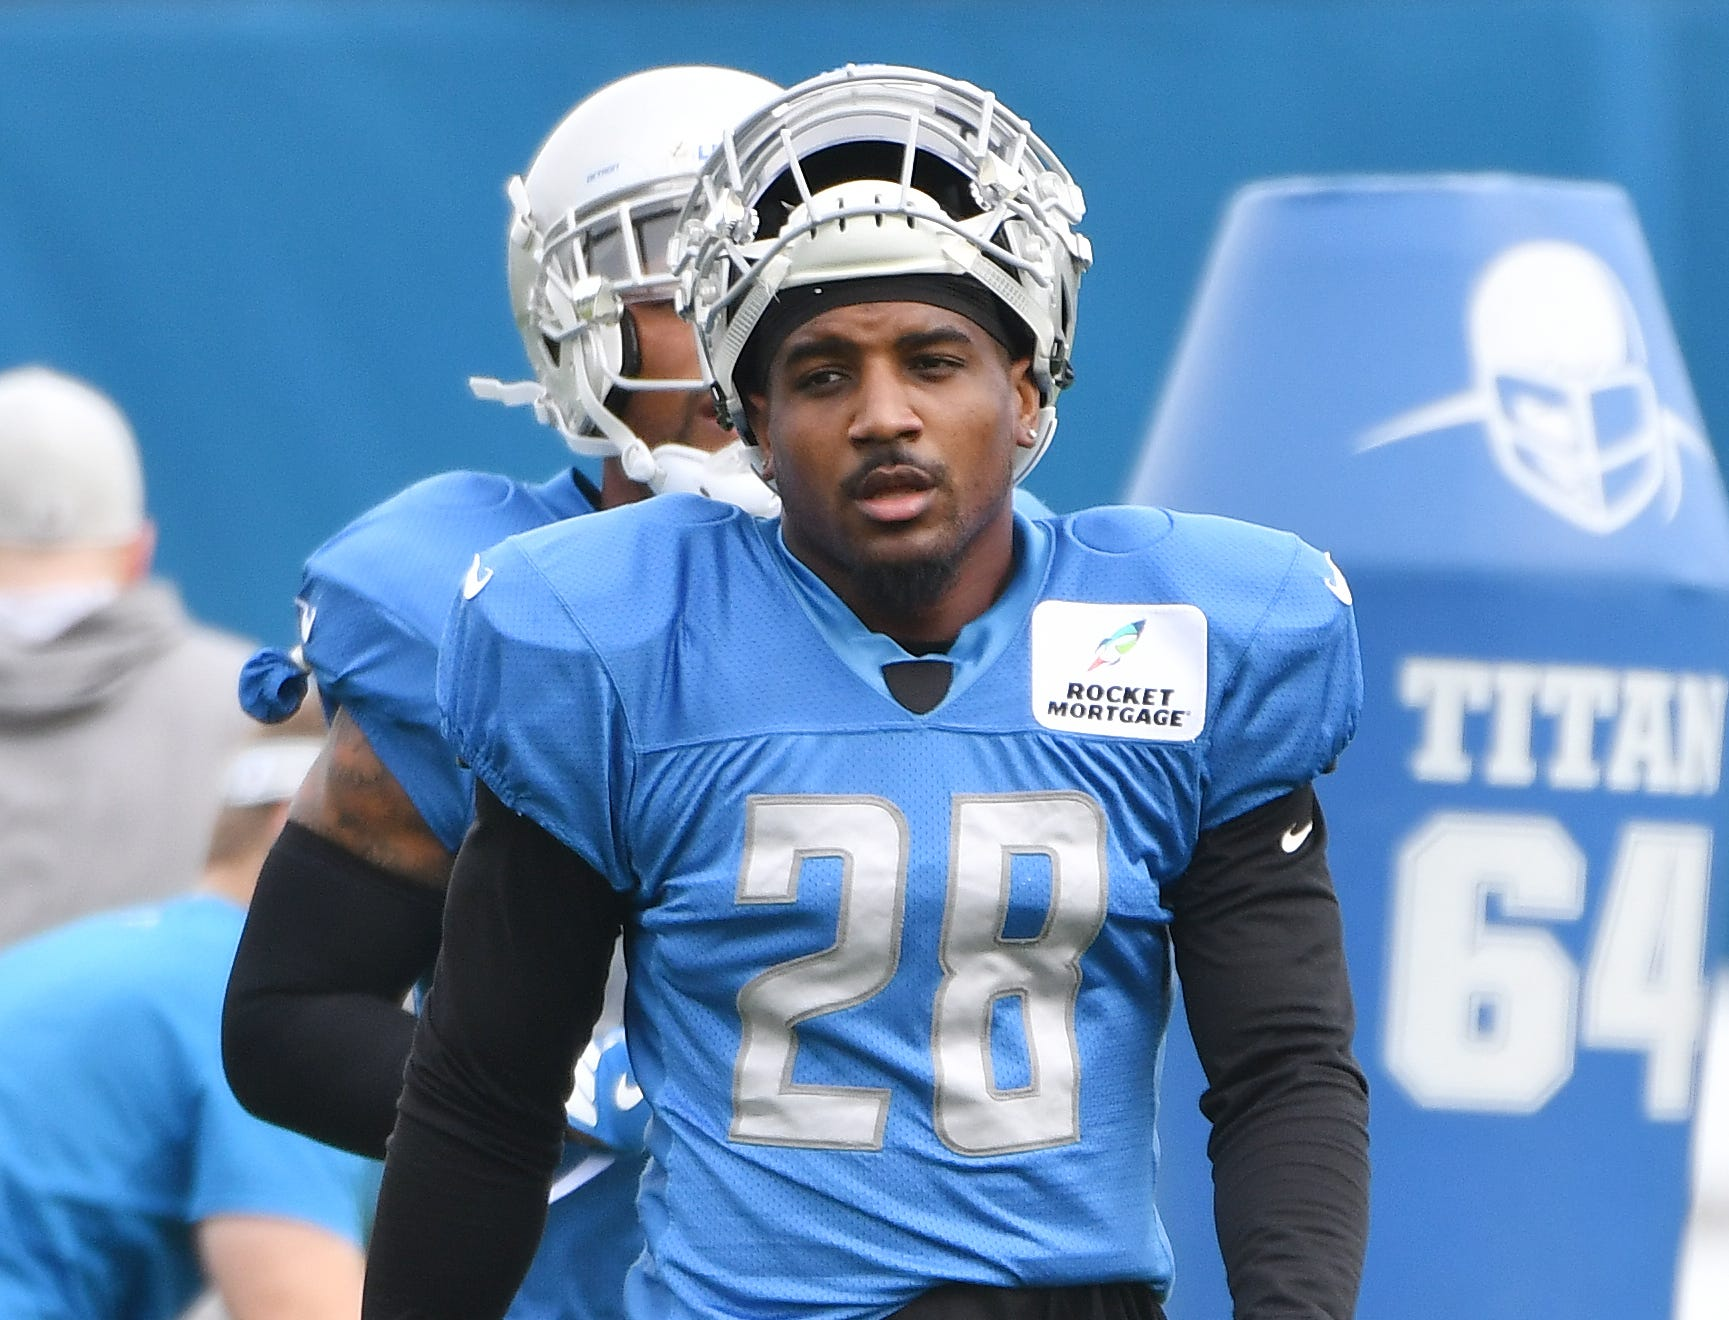 S Quandre Diggs: Diggs started the season off with a bang, returning an interception for a touchdown on the first snap. He hasn't forced another turnover, and has broken up only one more pass. Still, he's been reliable enough against both the pass and the run. Grade: B